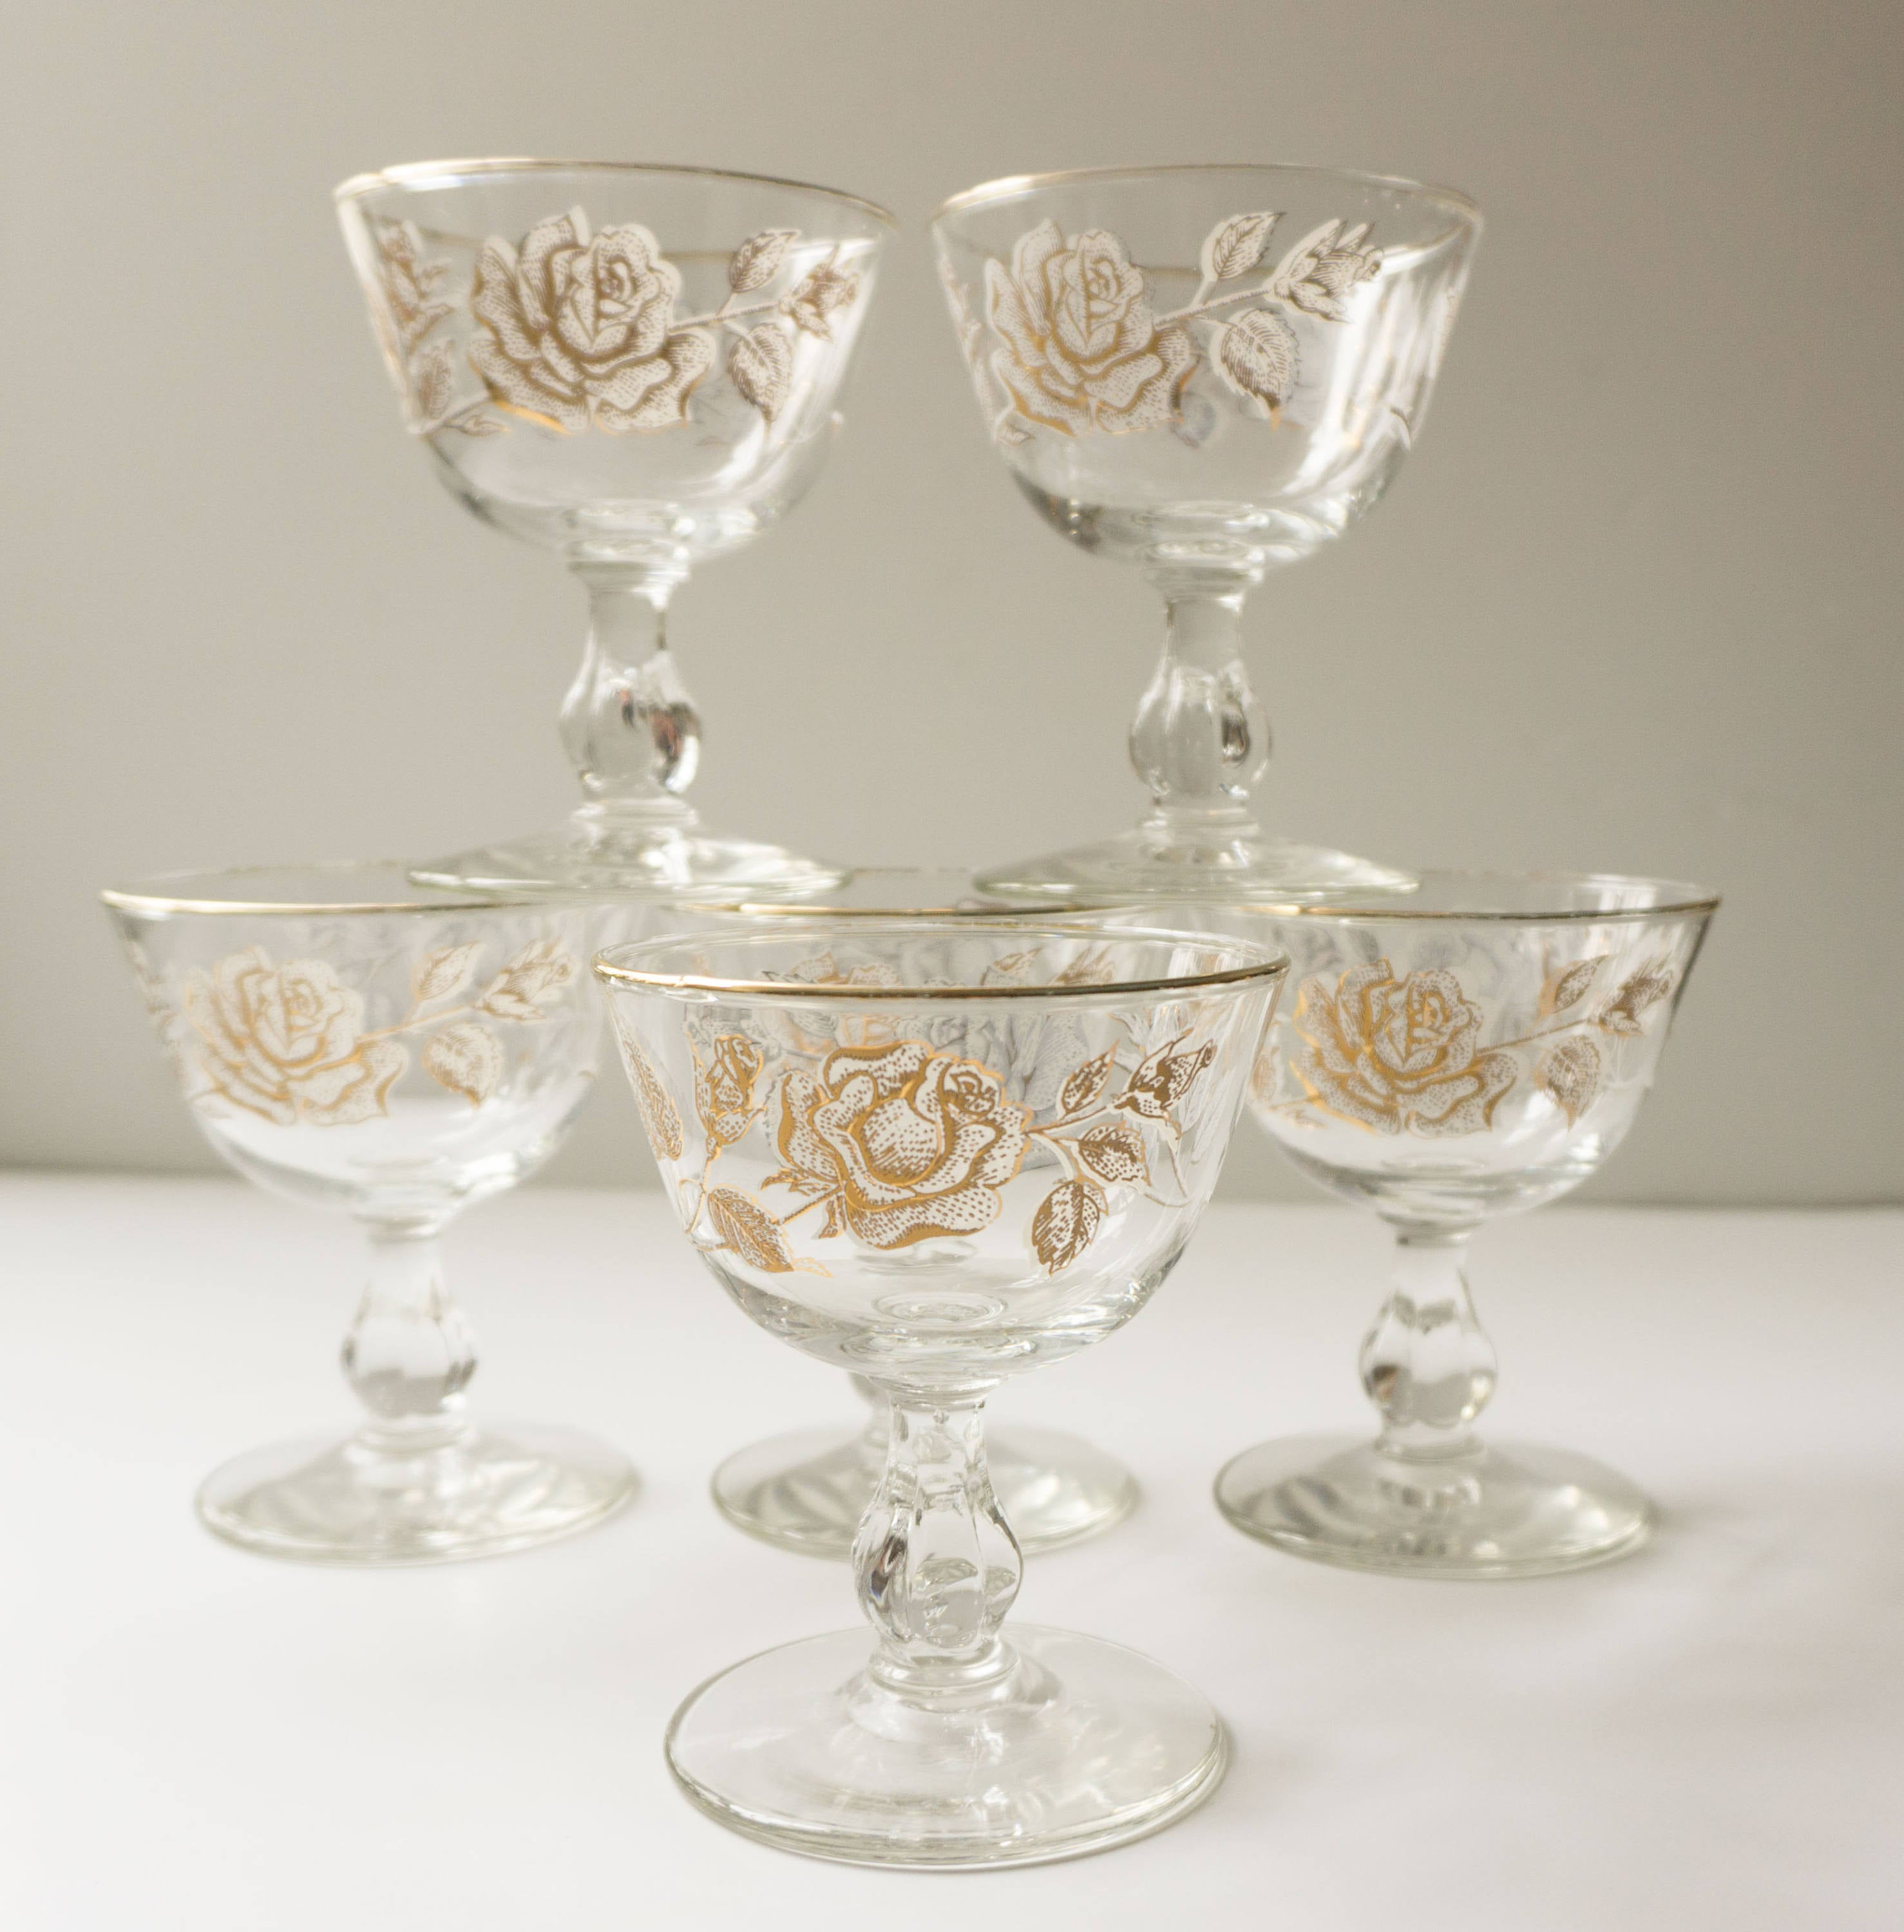 FIVE Champagne - Tall Sherbet Glasses in Rose Bouquet by Libbey Glass Company c.1963